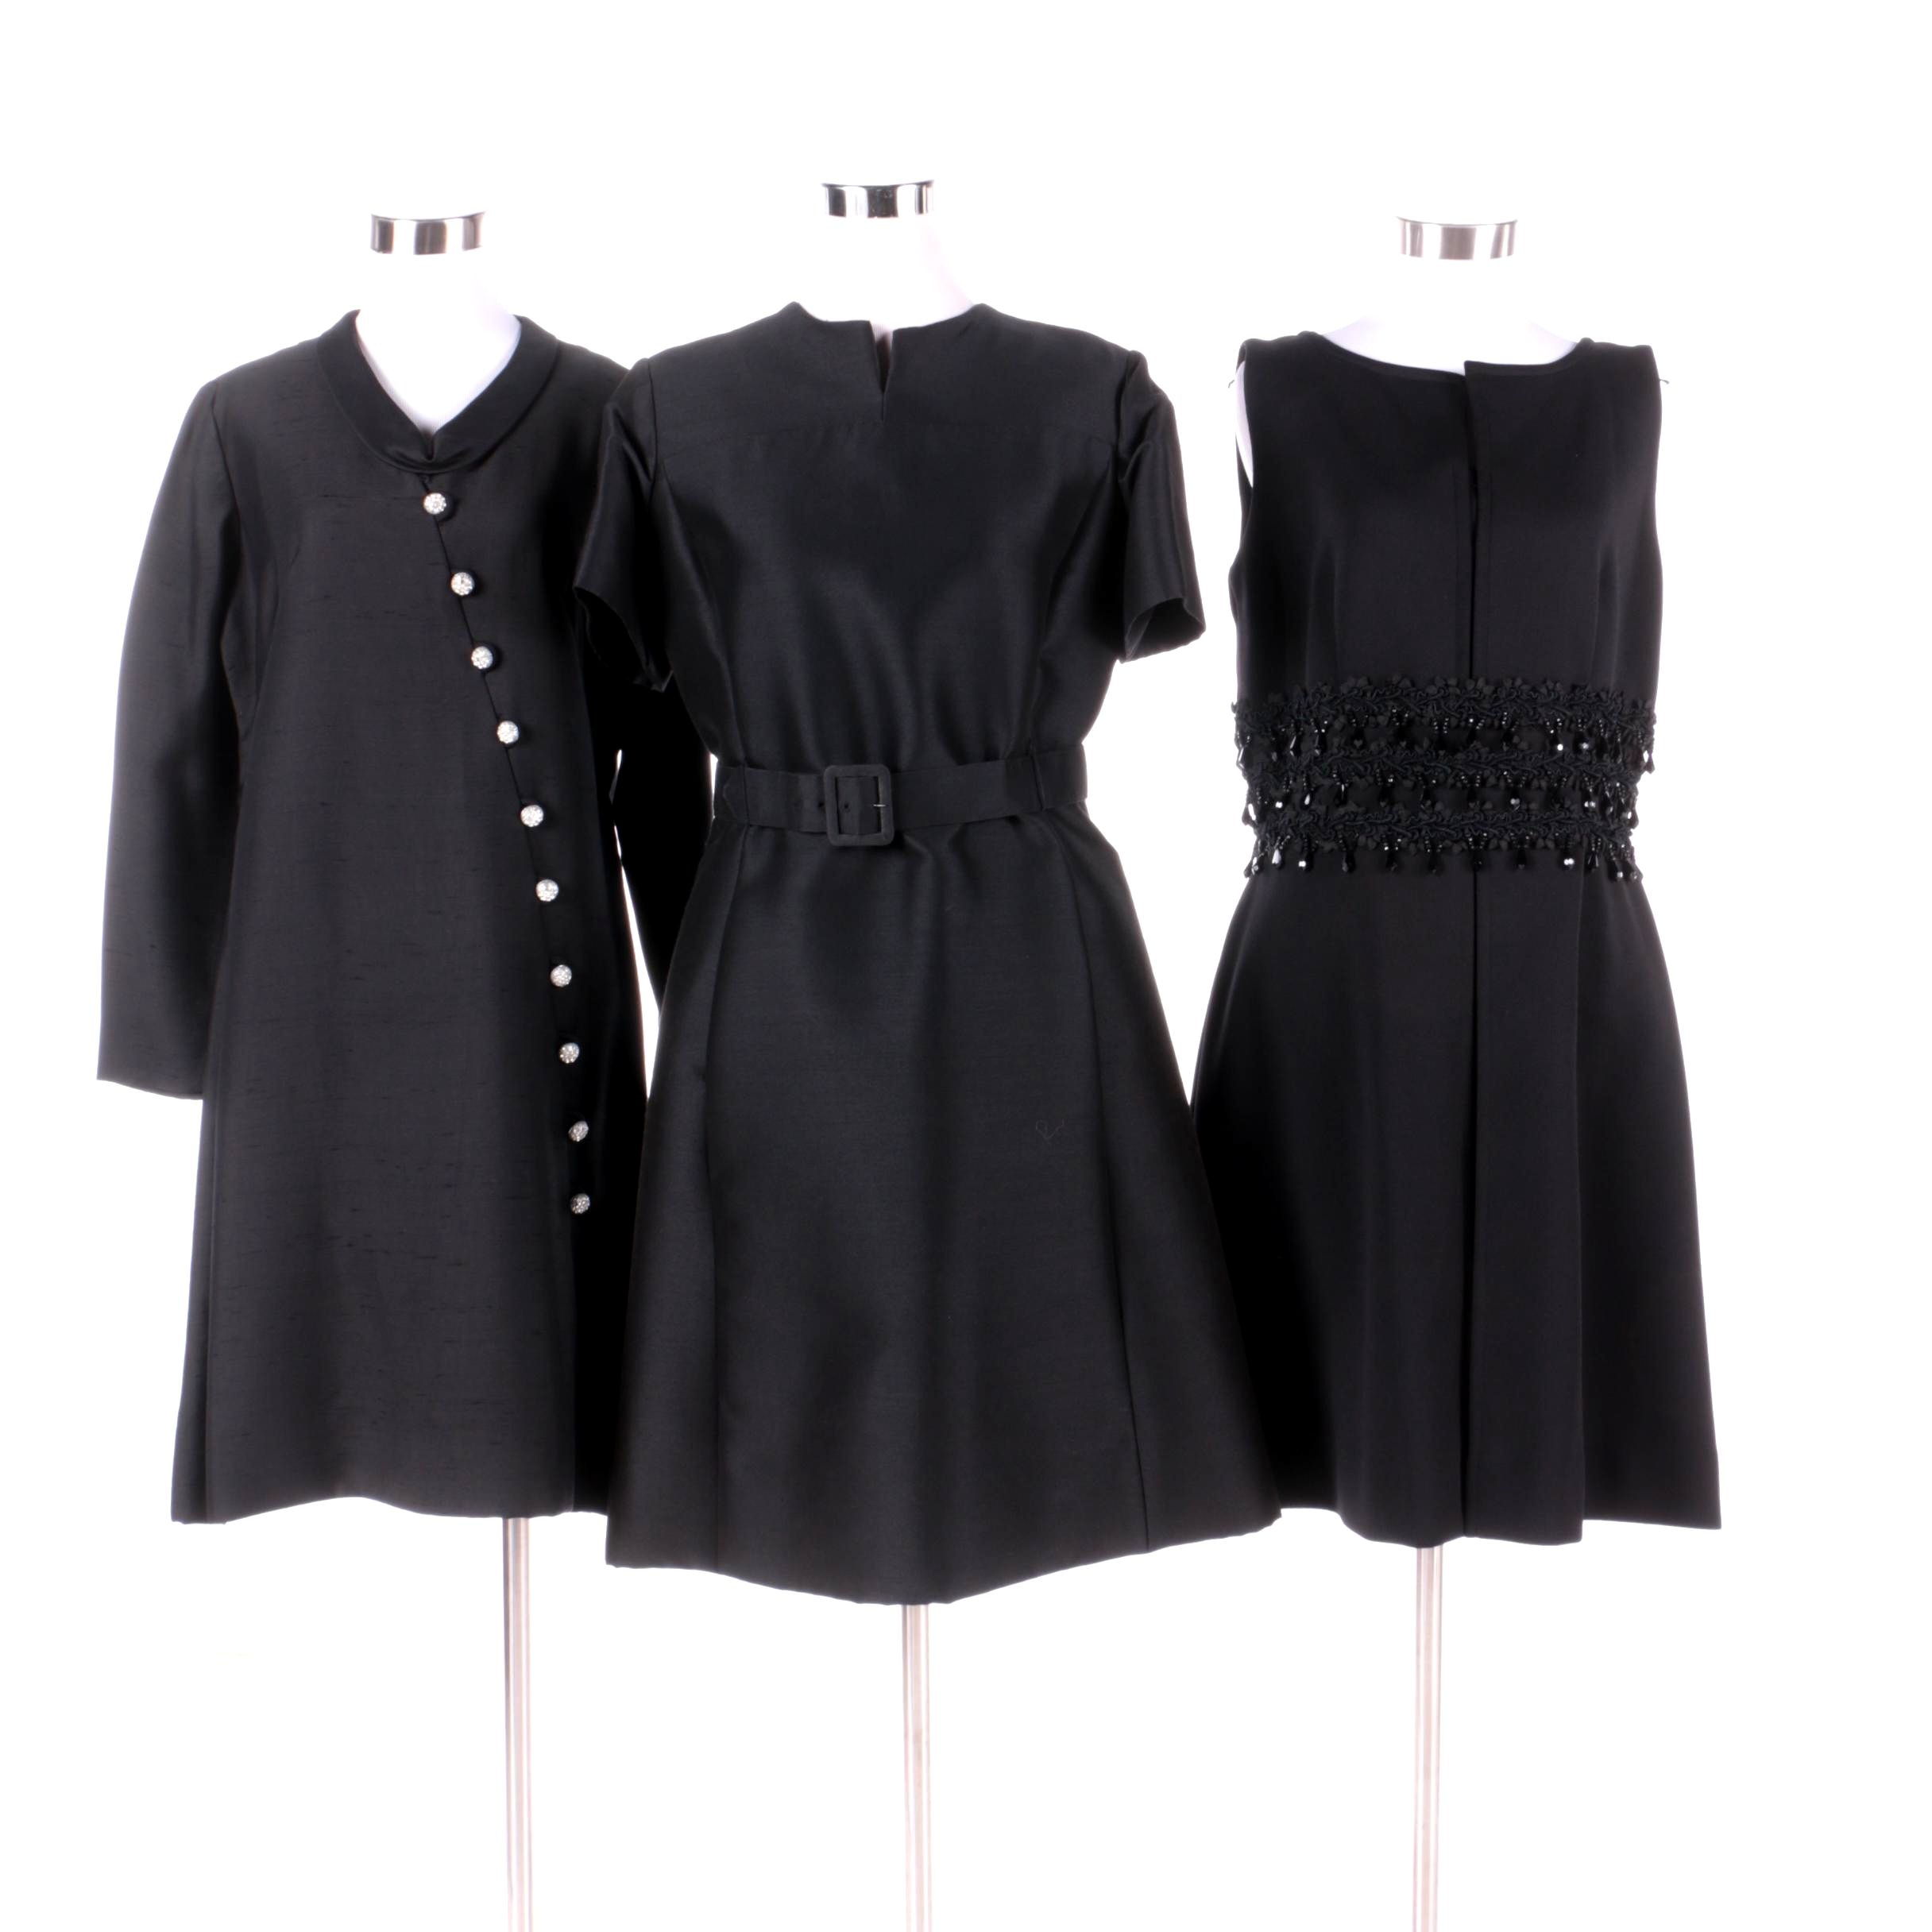 1960s Vintage Silk Beaded and Rhinstone Black Cocktail Dresses with Leslie Fay